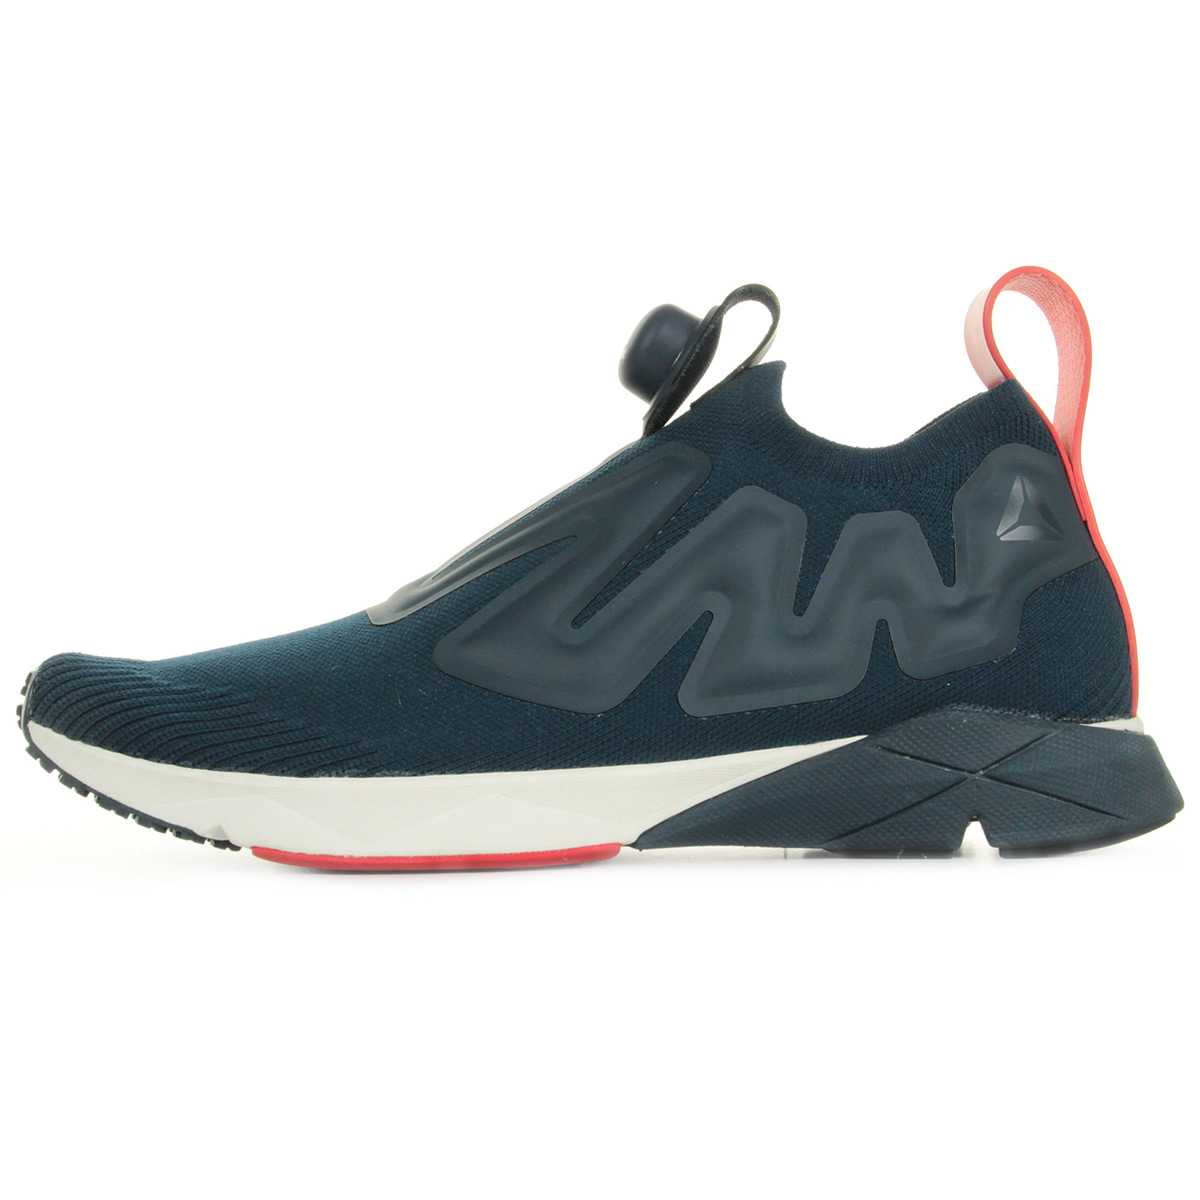 Reebok Pump Supreme ULTK CN0078, Baskets mode homme